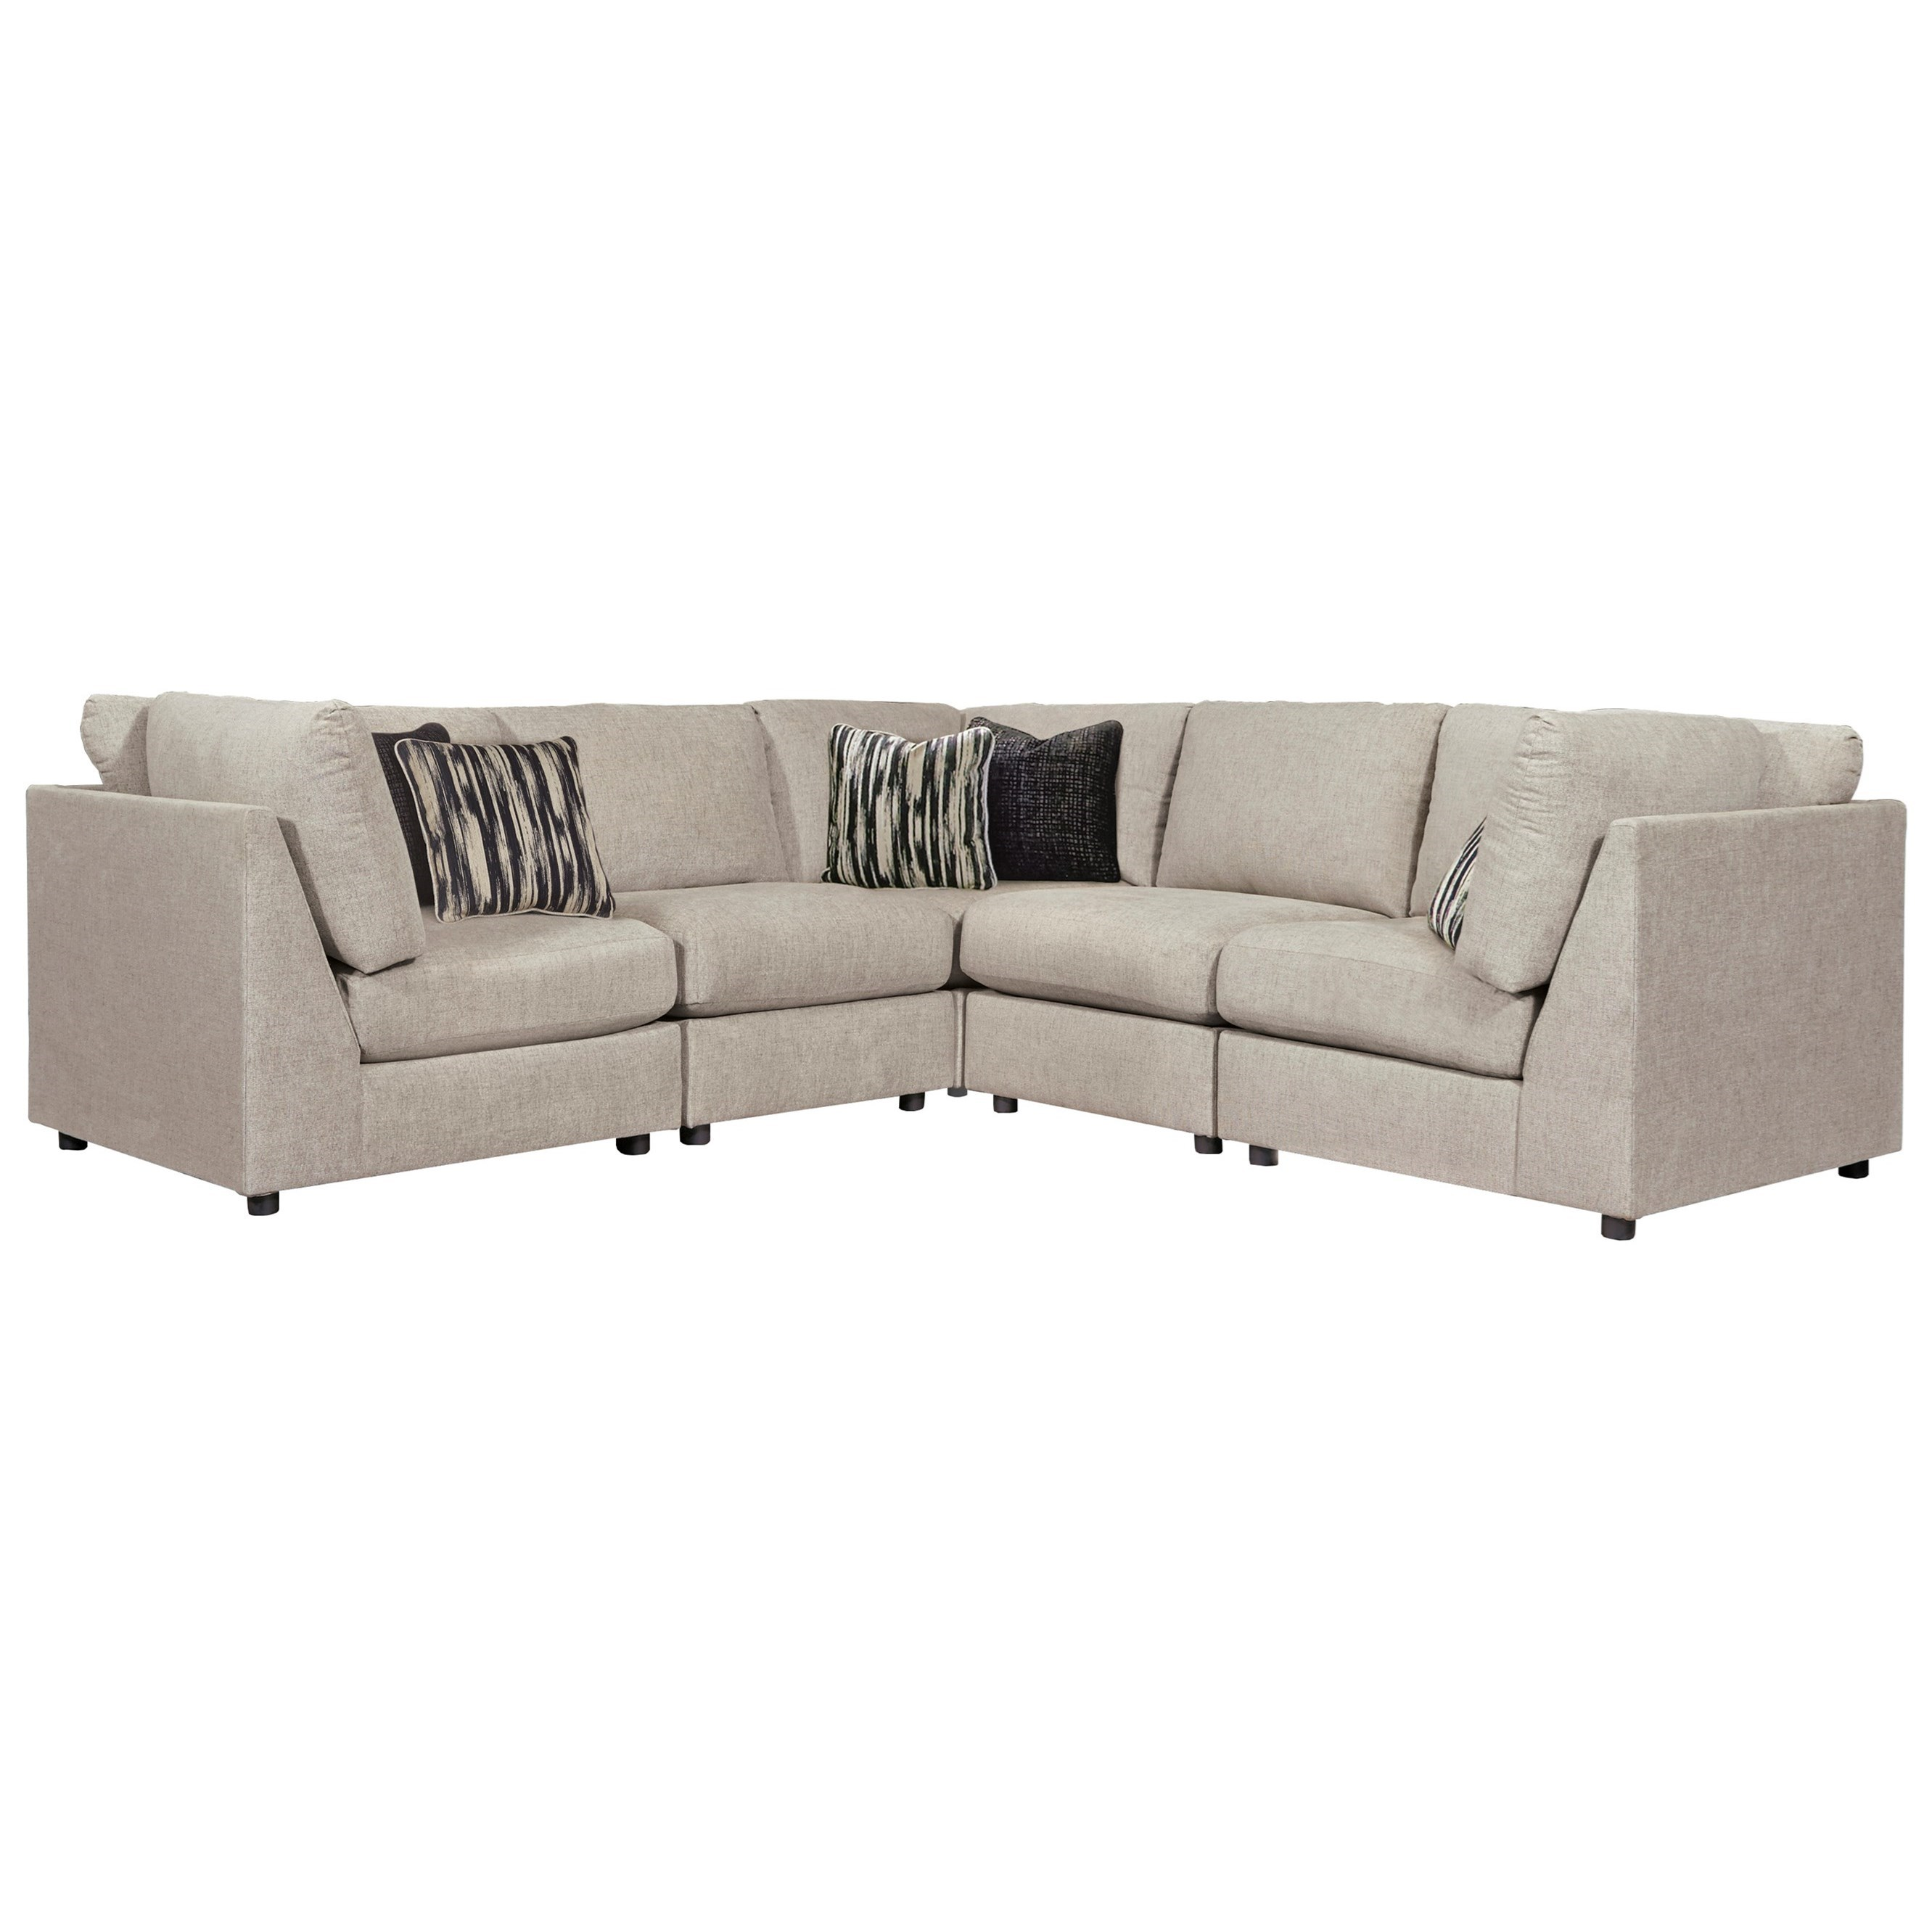 Kellway 5-Piece Sectional by Signature at Walker's Furniture